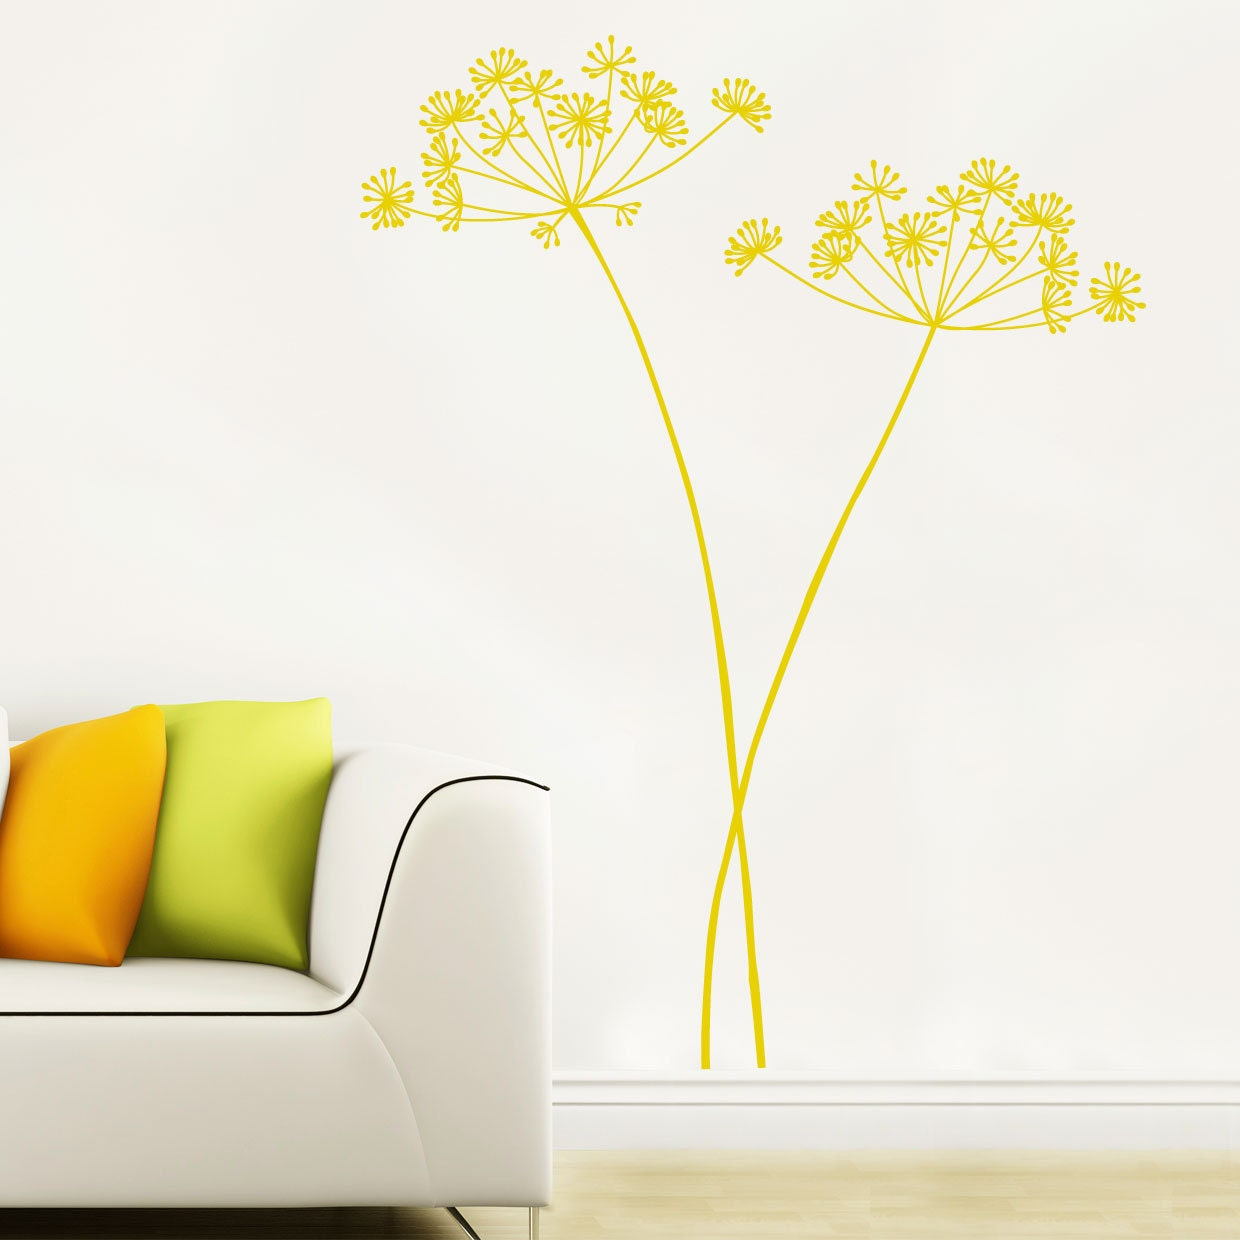 Algajola Flower Wall Decal Yellow Ocher - Yellow wall decals